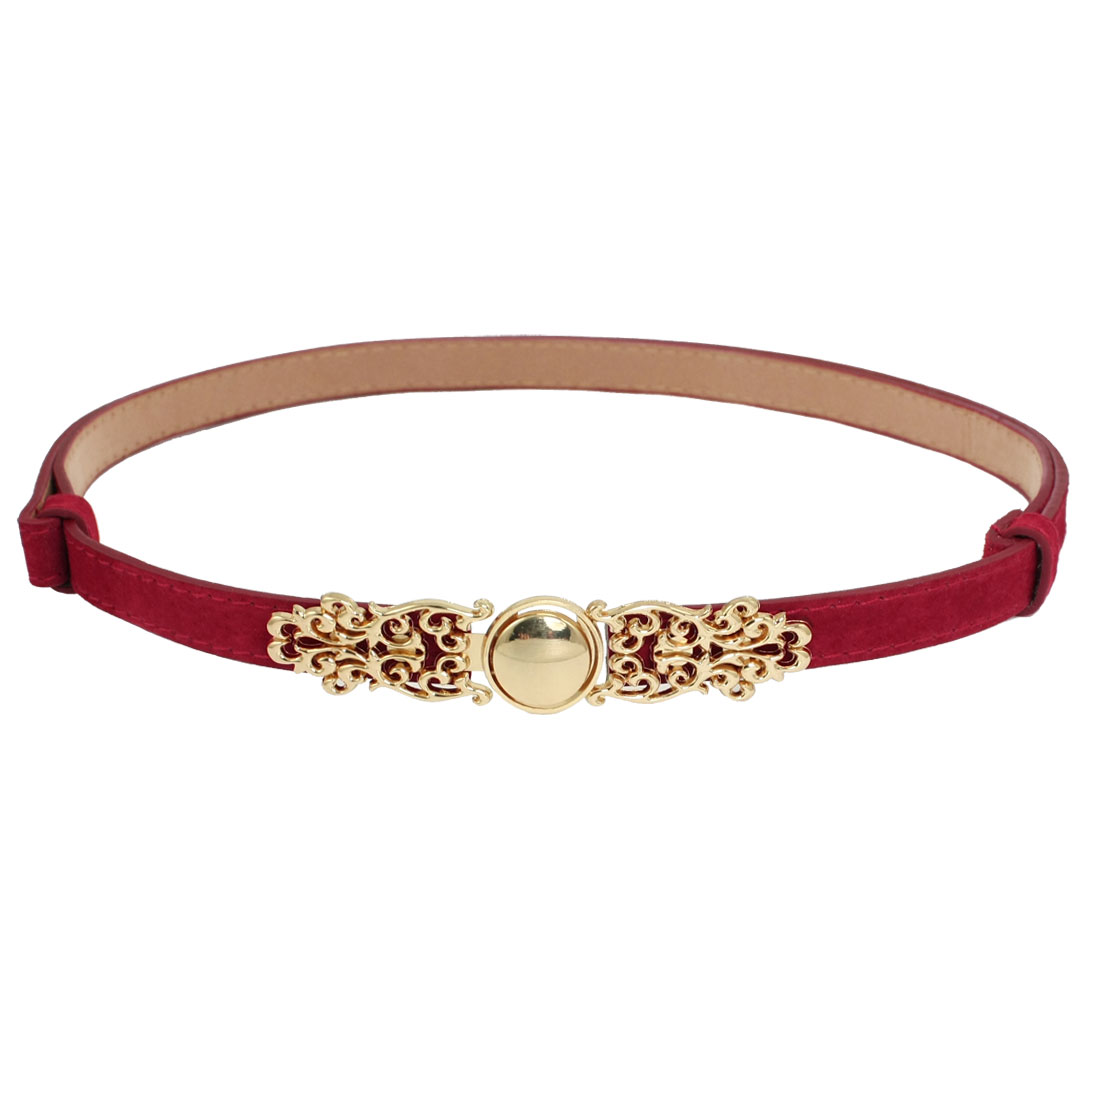 Lady Metal Floral Accent Faux Leather Adjustable Skinny Waist Belt Red